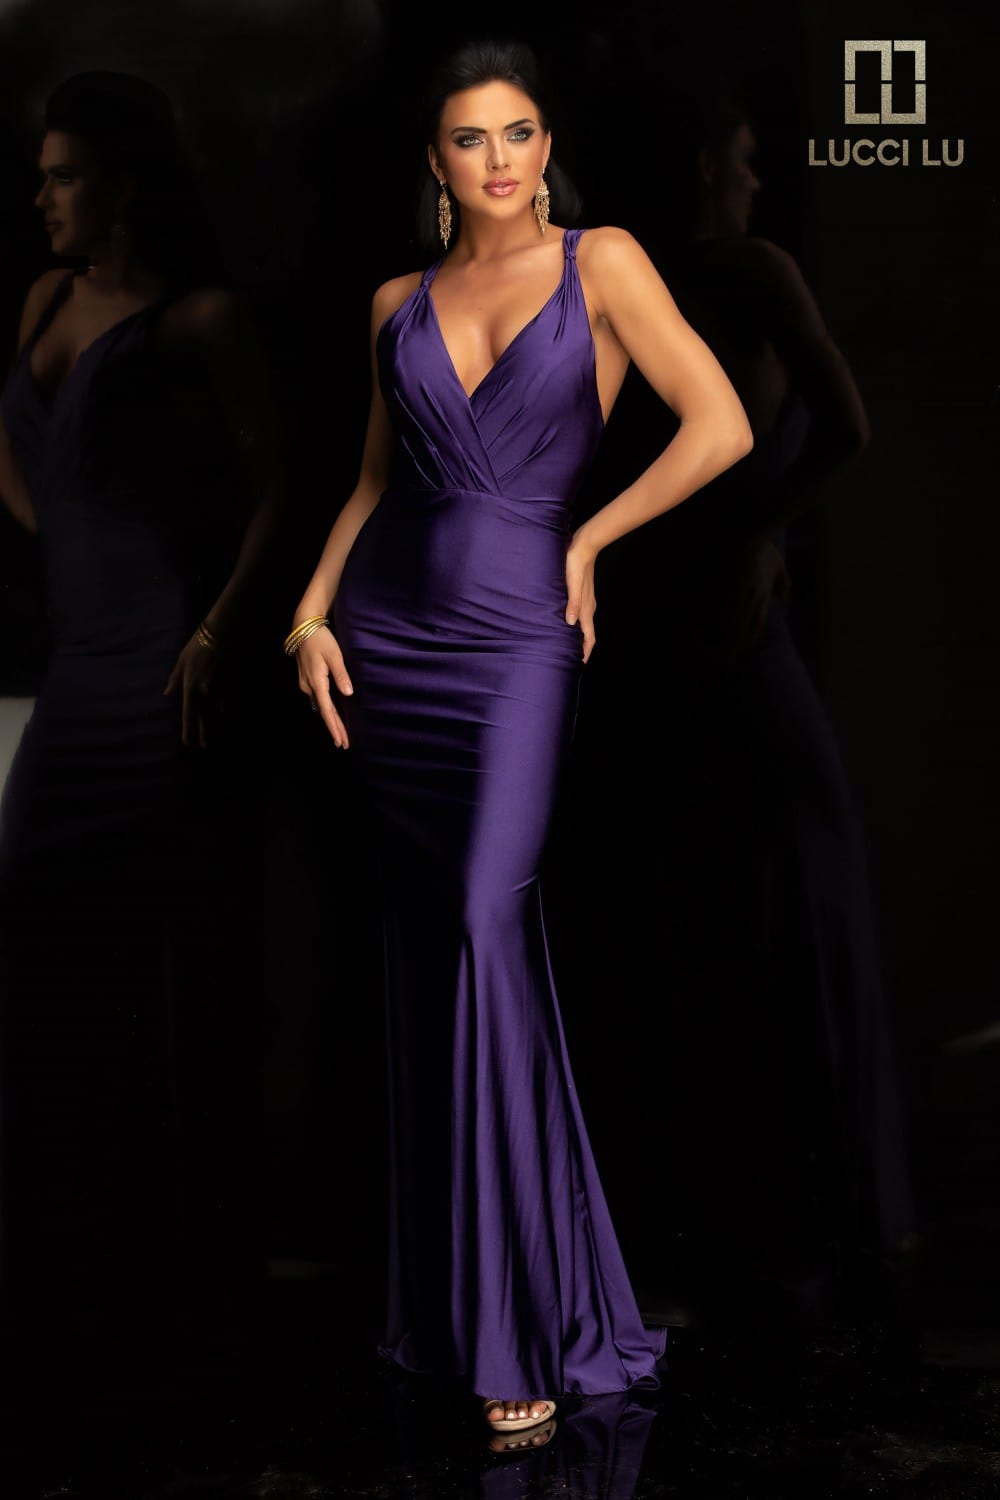 Beautiful fitted dress with low warped plunge bodices with a cross-cross back, and trainBeautiful fitted dress with low warped plunge bodices with a cross-cross back, and train